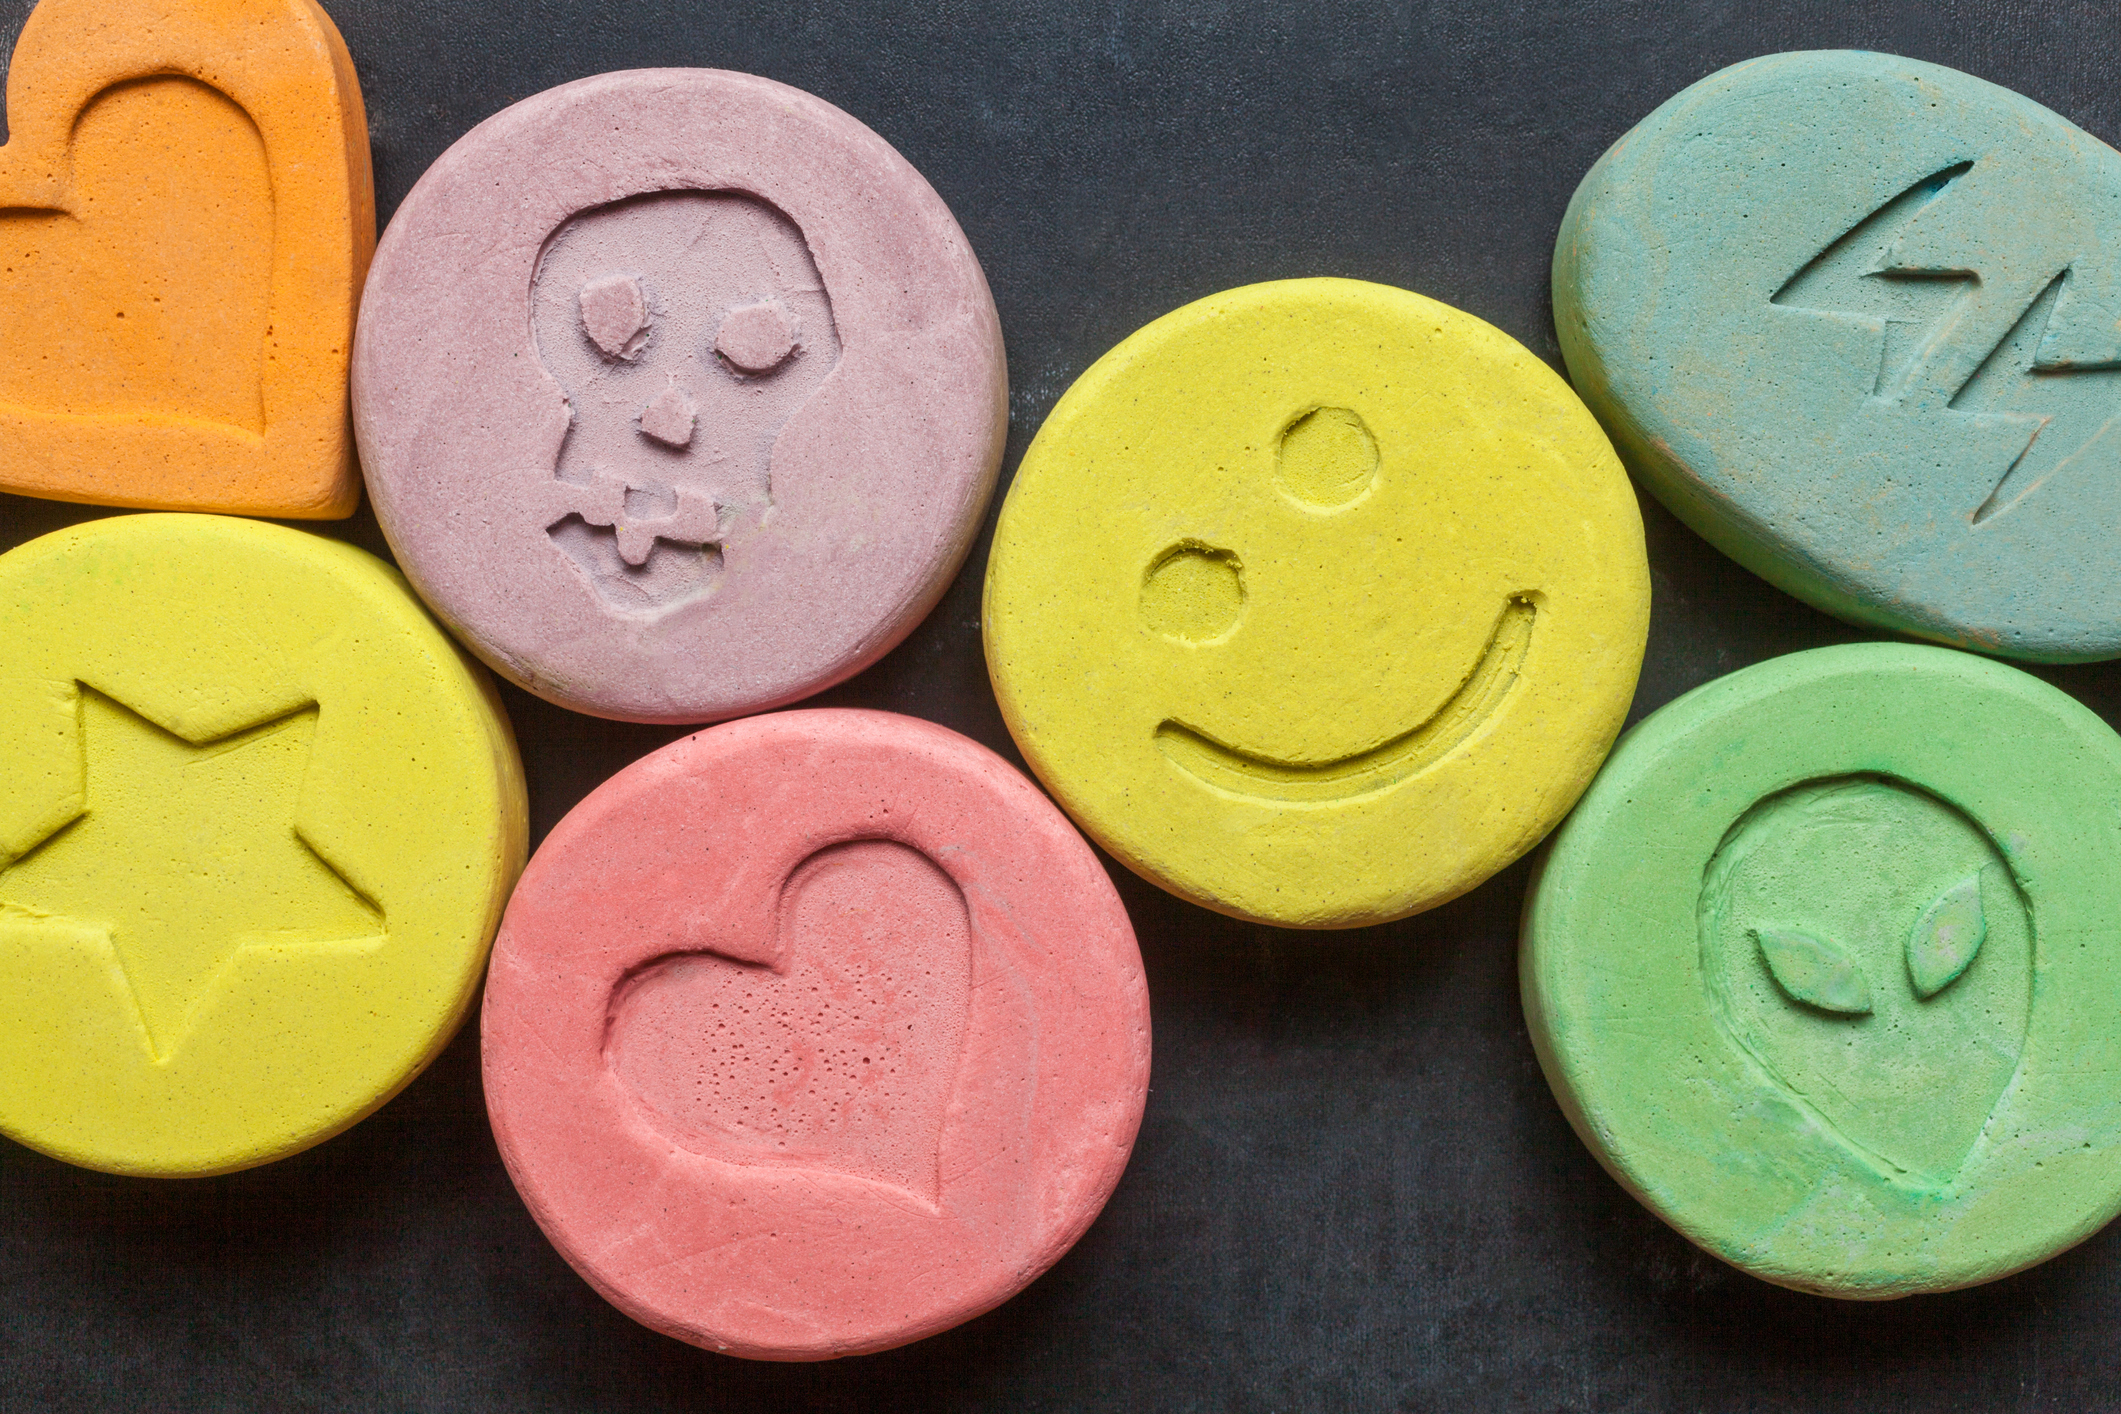 Fda Warns Over The Counter Male Enhancement Pill Actually Has Viagra In It